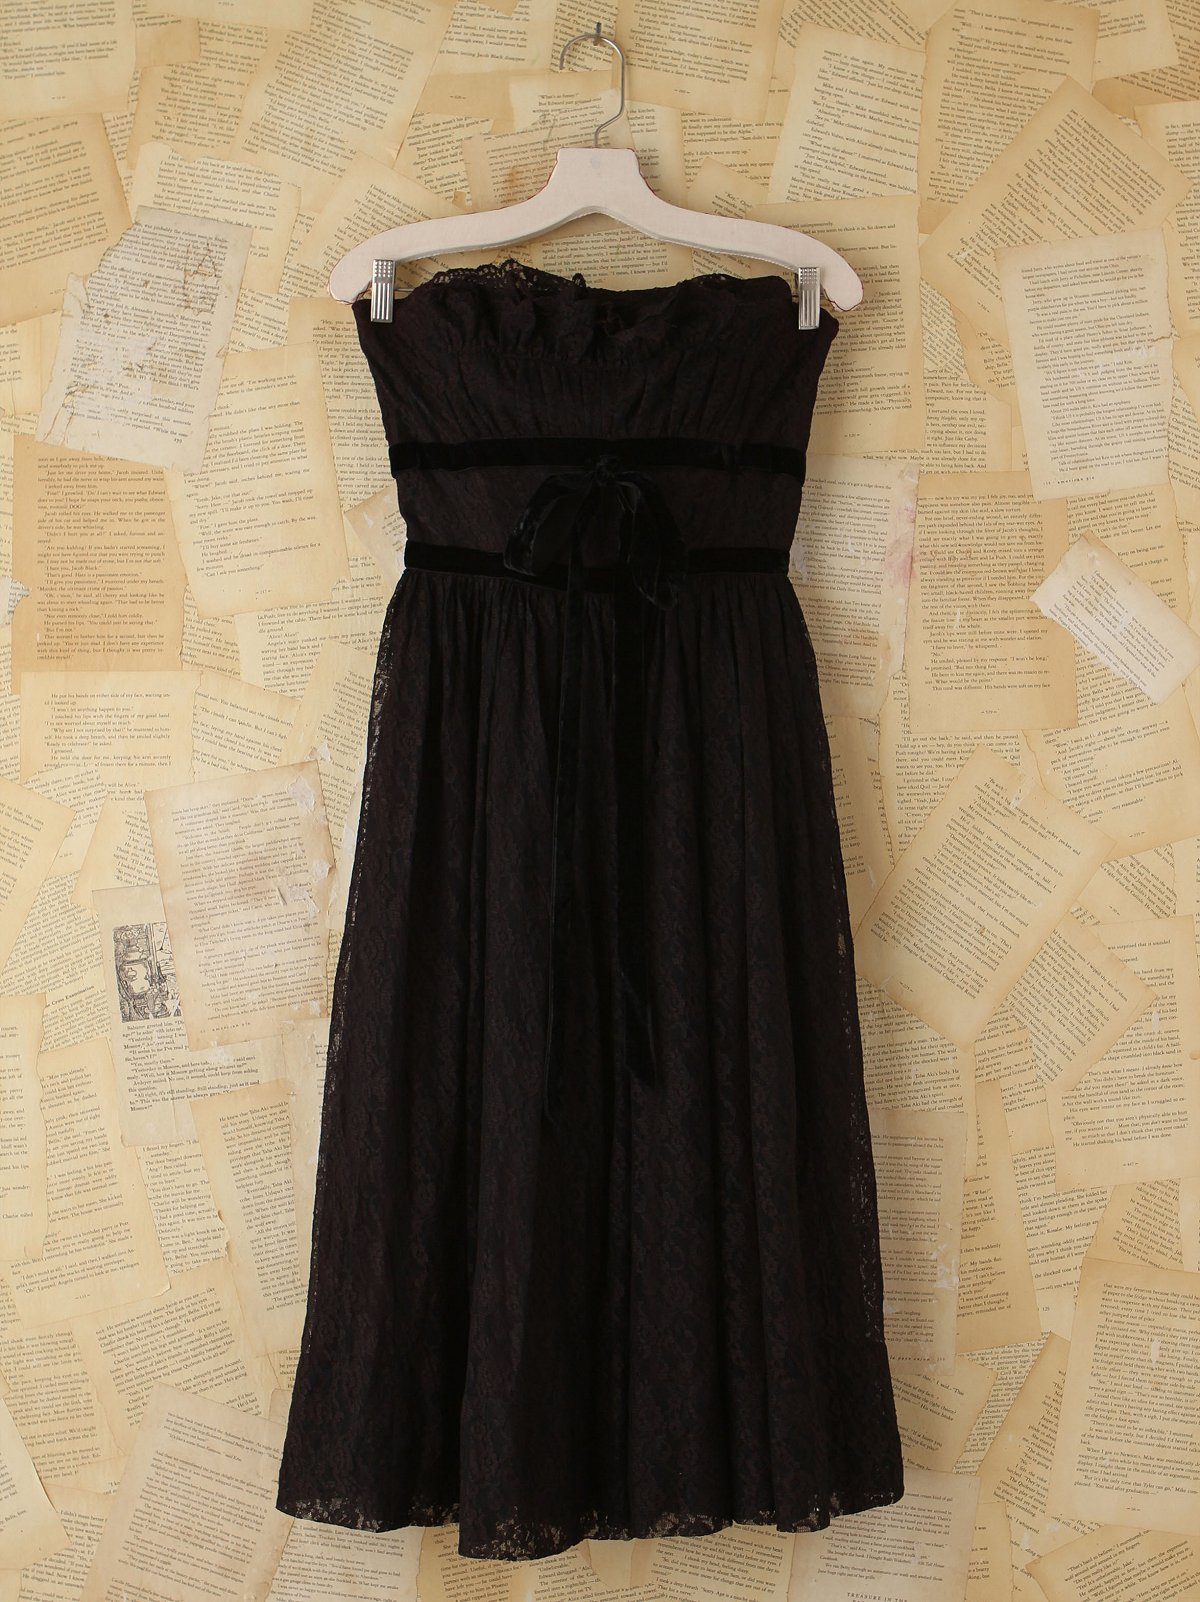 Vintage Black Lace Party Dress